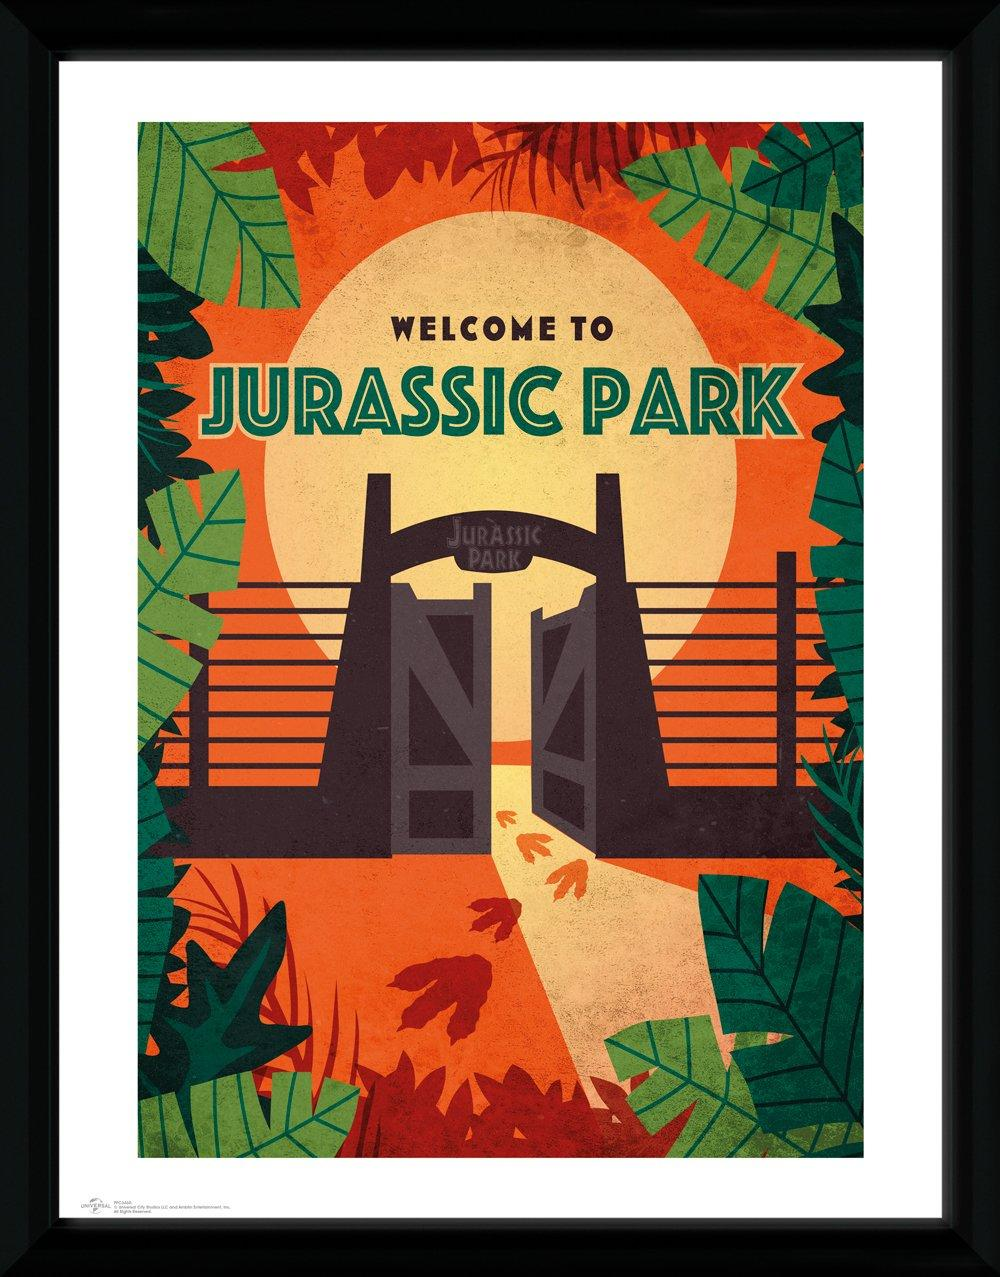 JURASSIC PARK - Collector Print 30X40 - Welcome_1